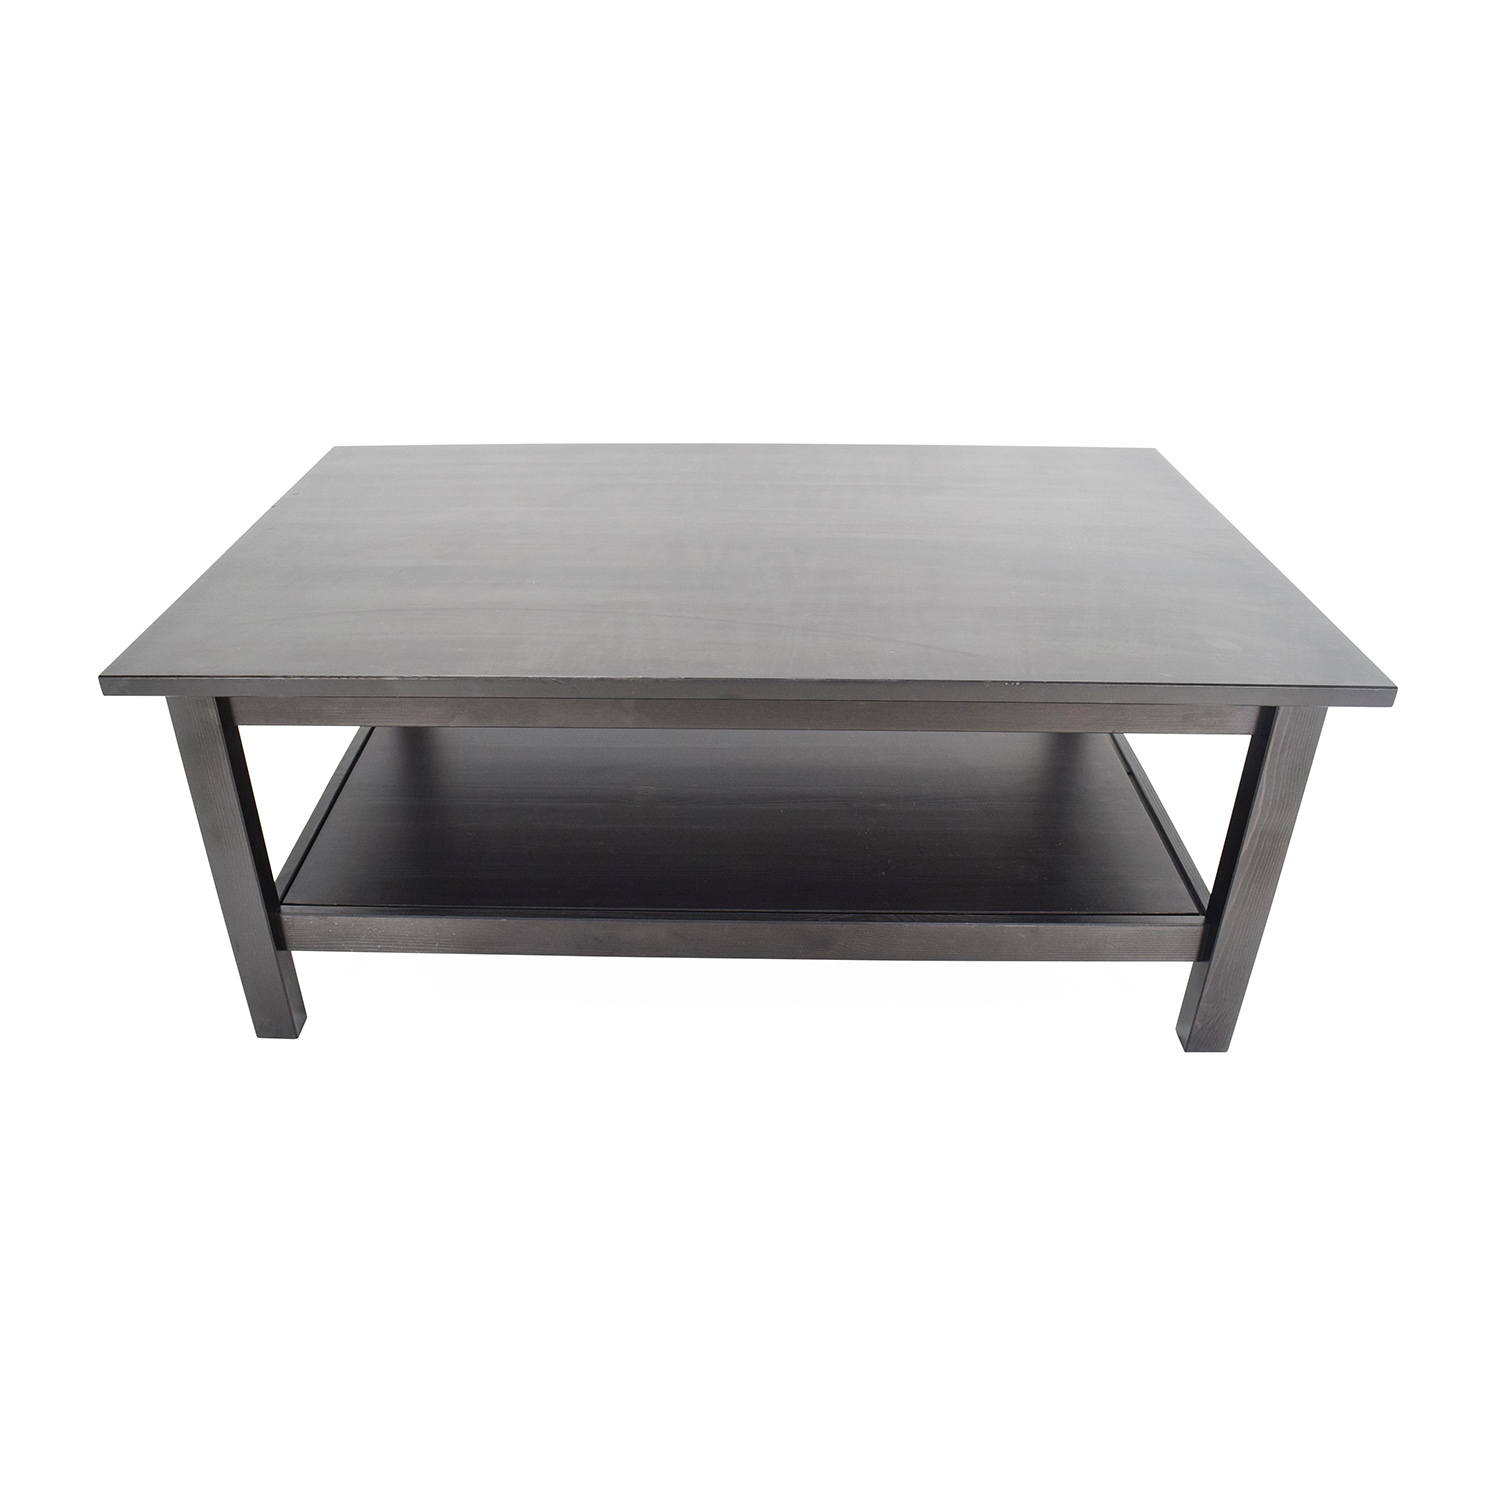 50% OFF IKEA Dark Chocolate Coffee Table Tables